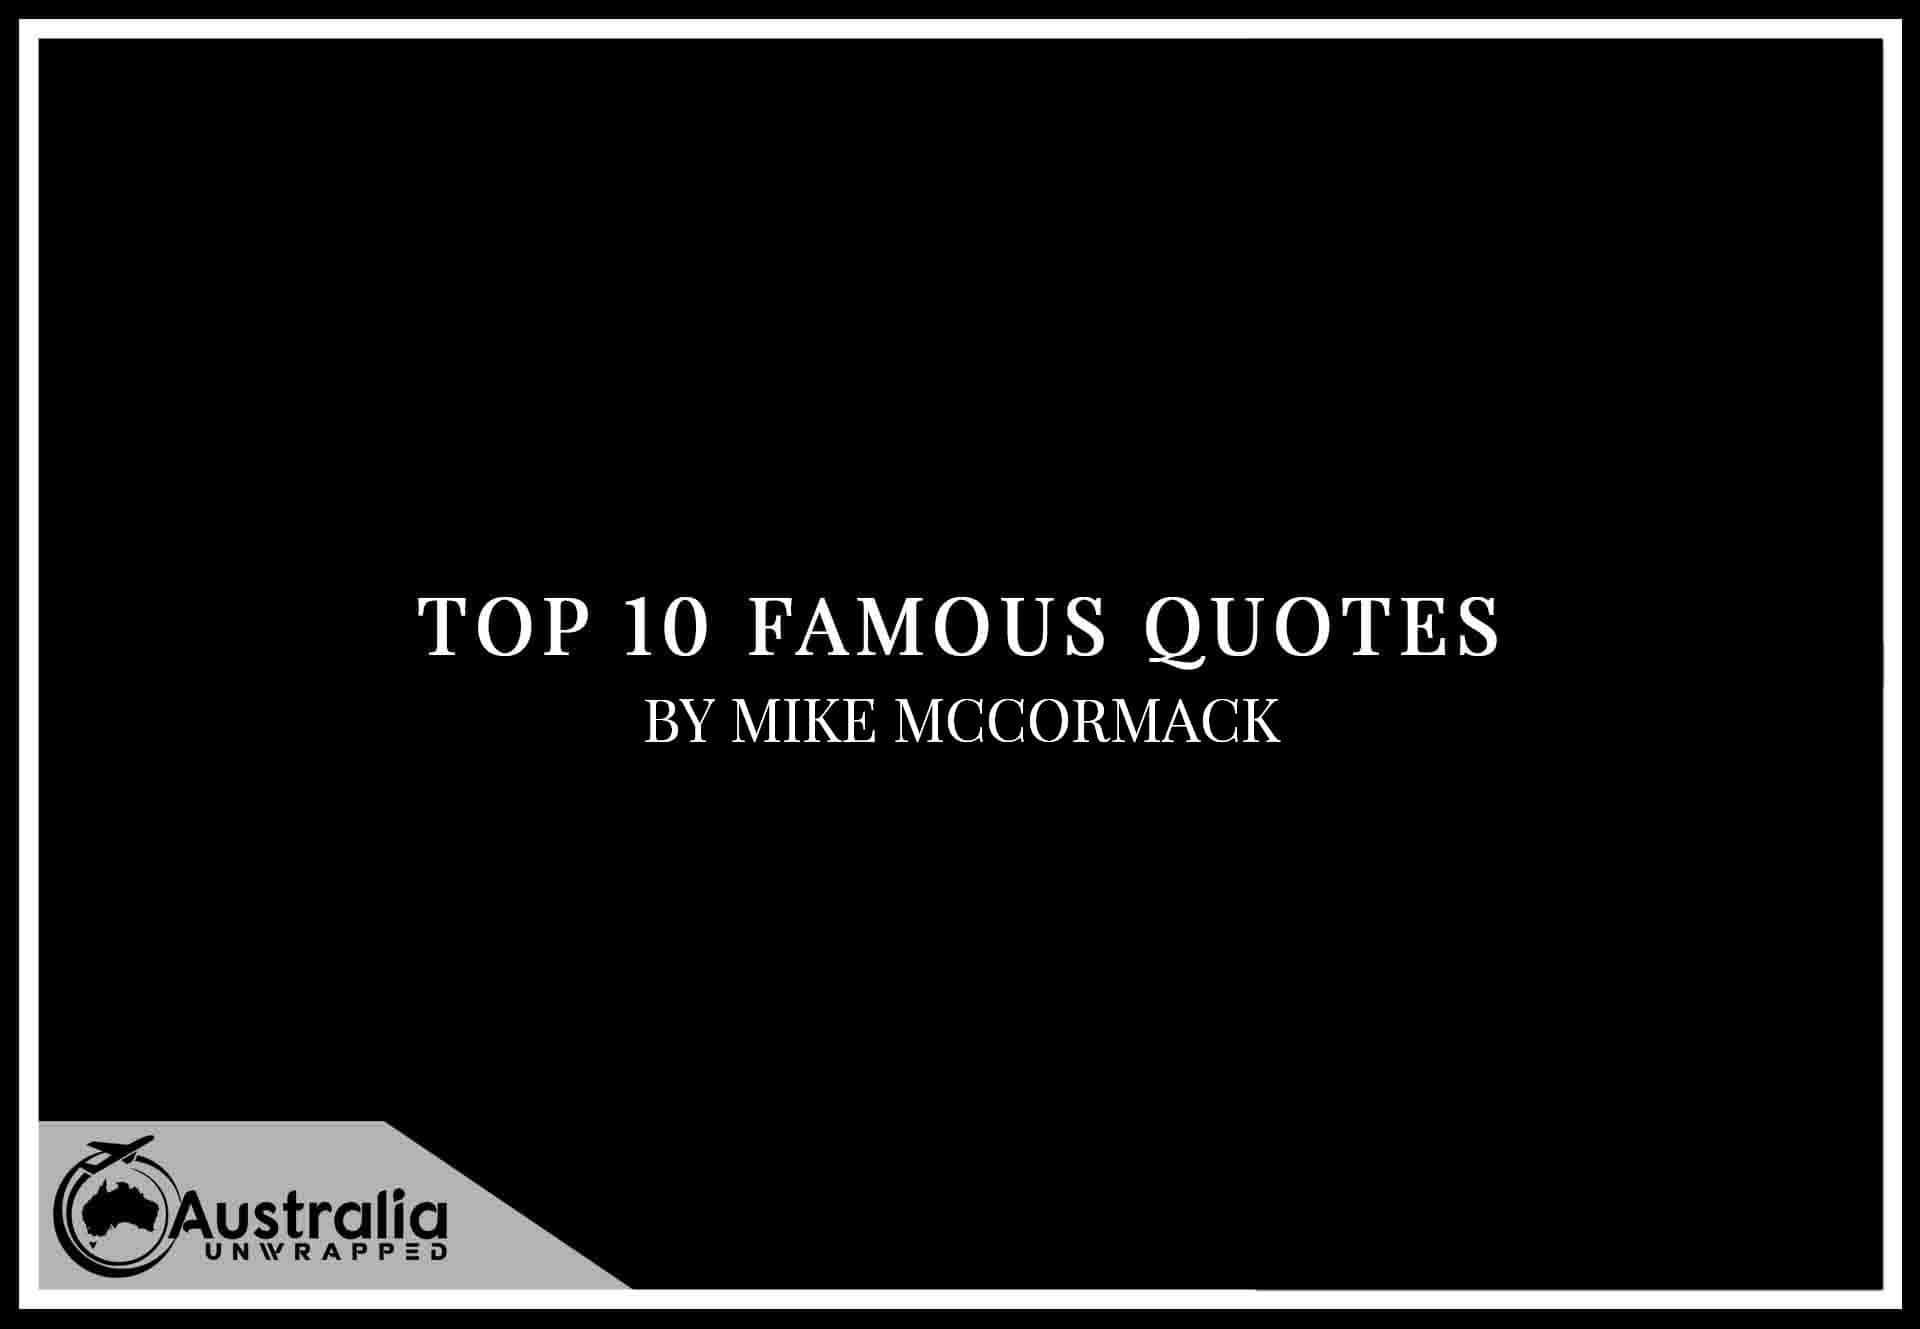 Top 10 Famous Quotes by Author Mike McCormack